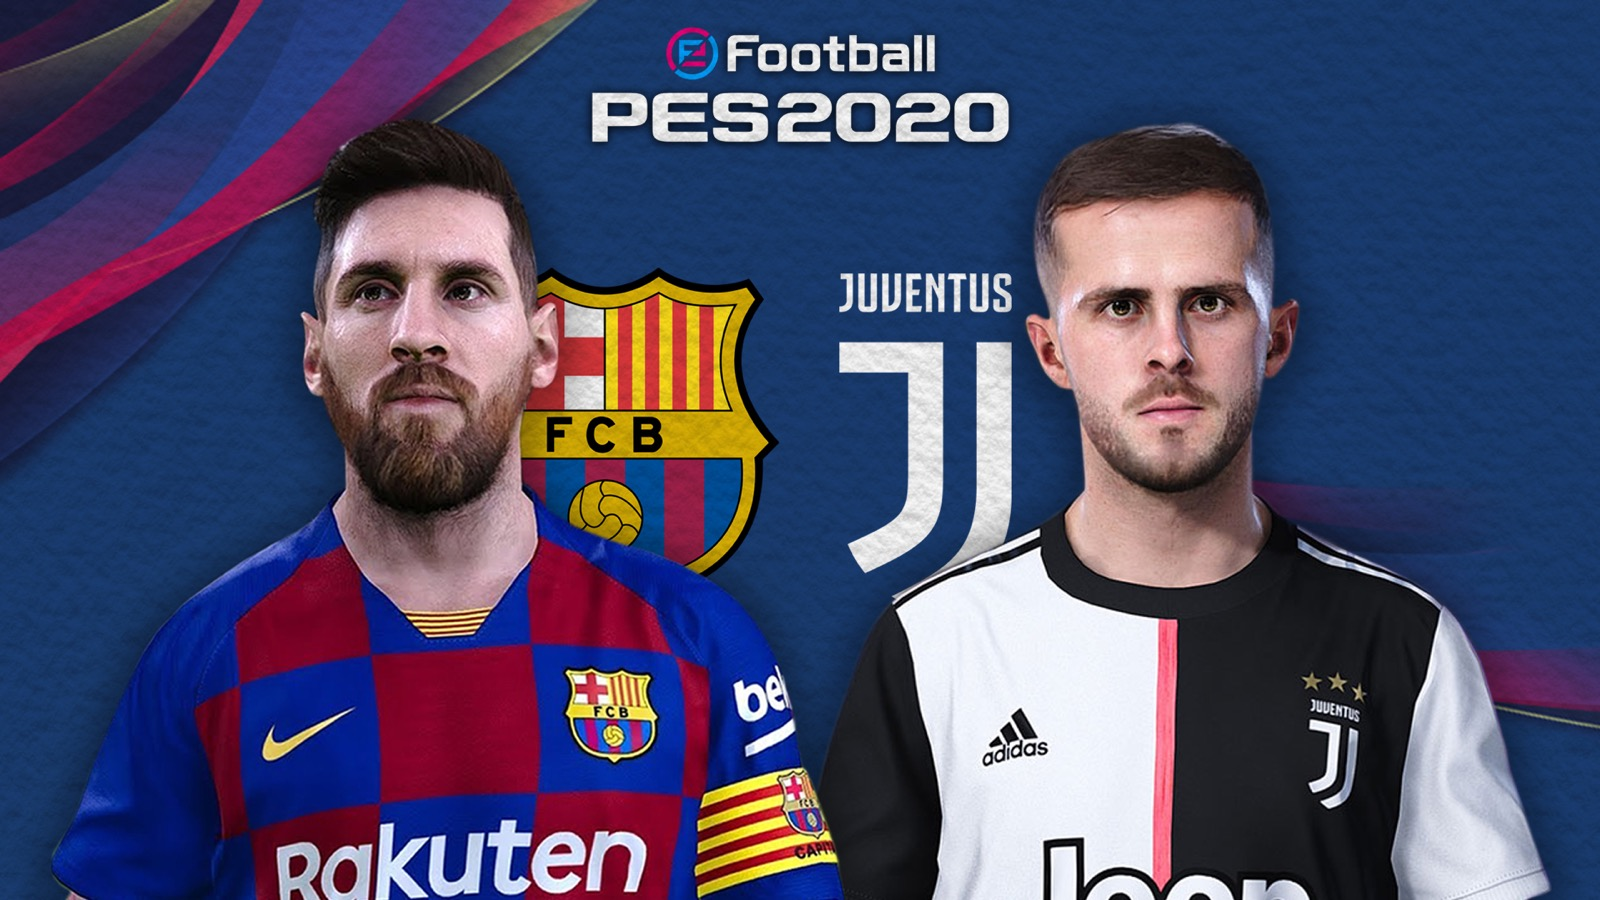 Barca V Juventus On Pes2020 Who Will Come Out On Top